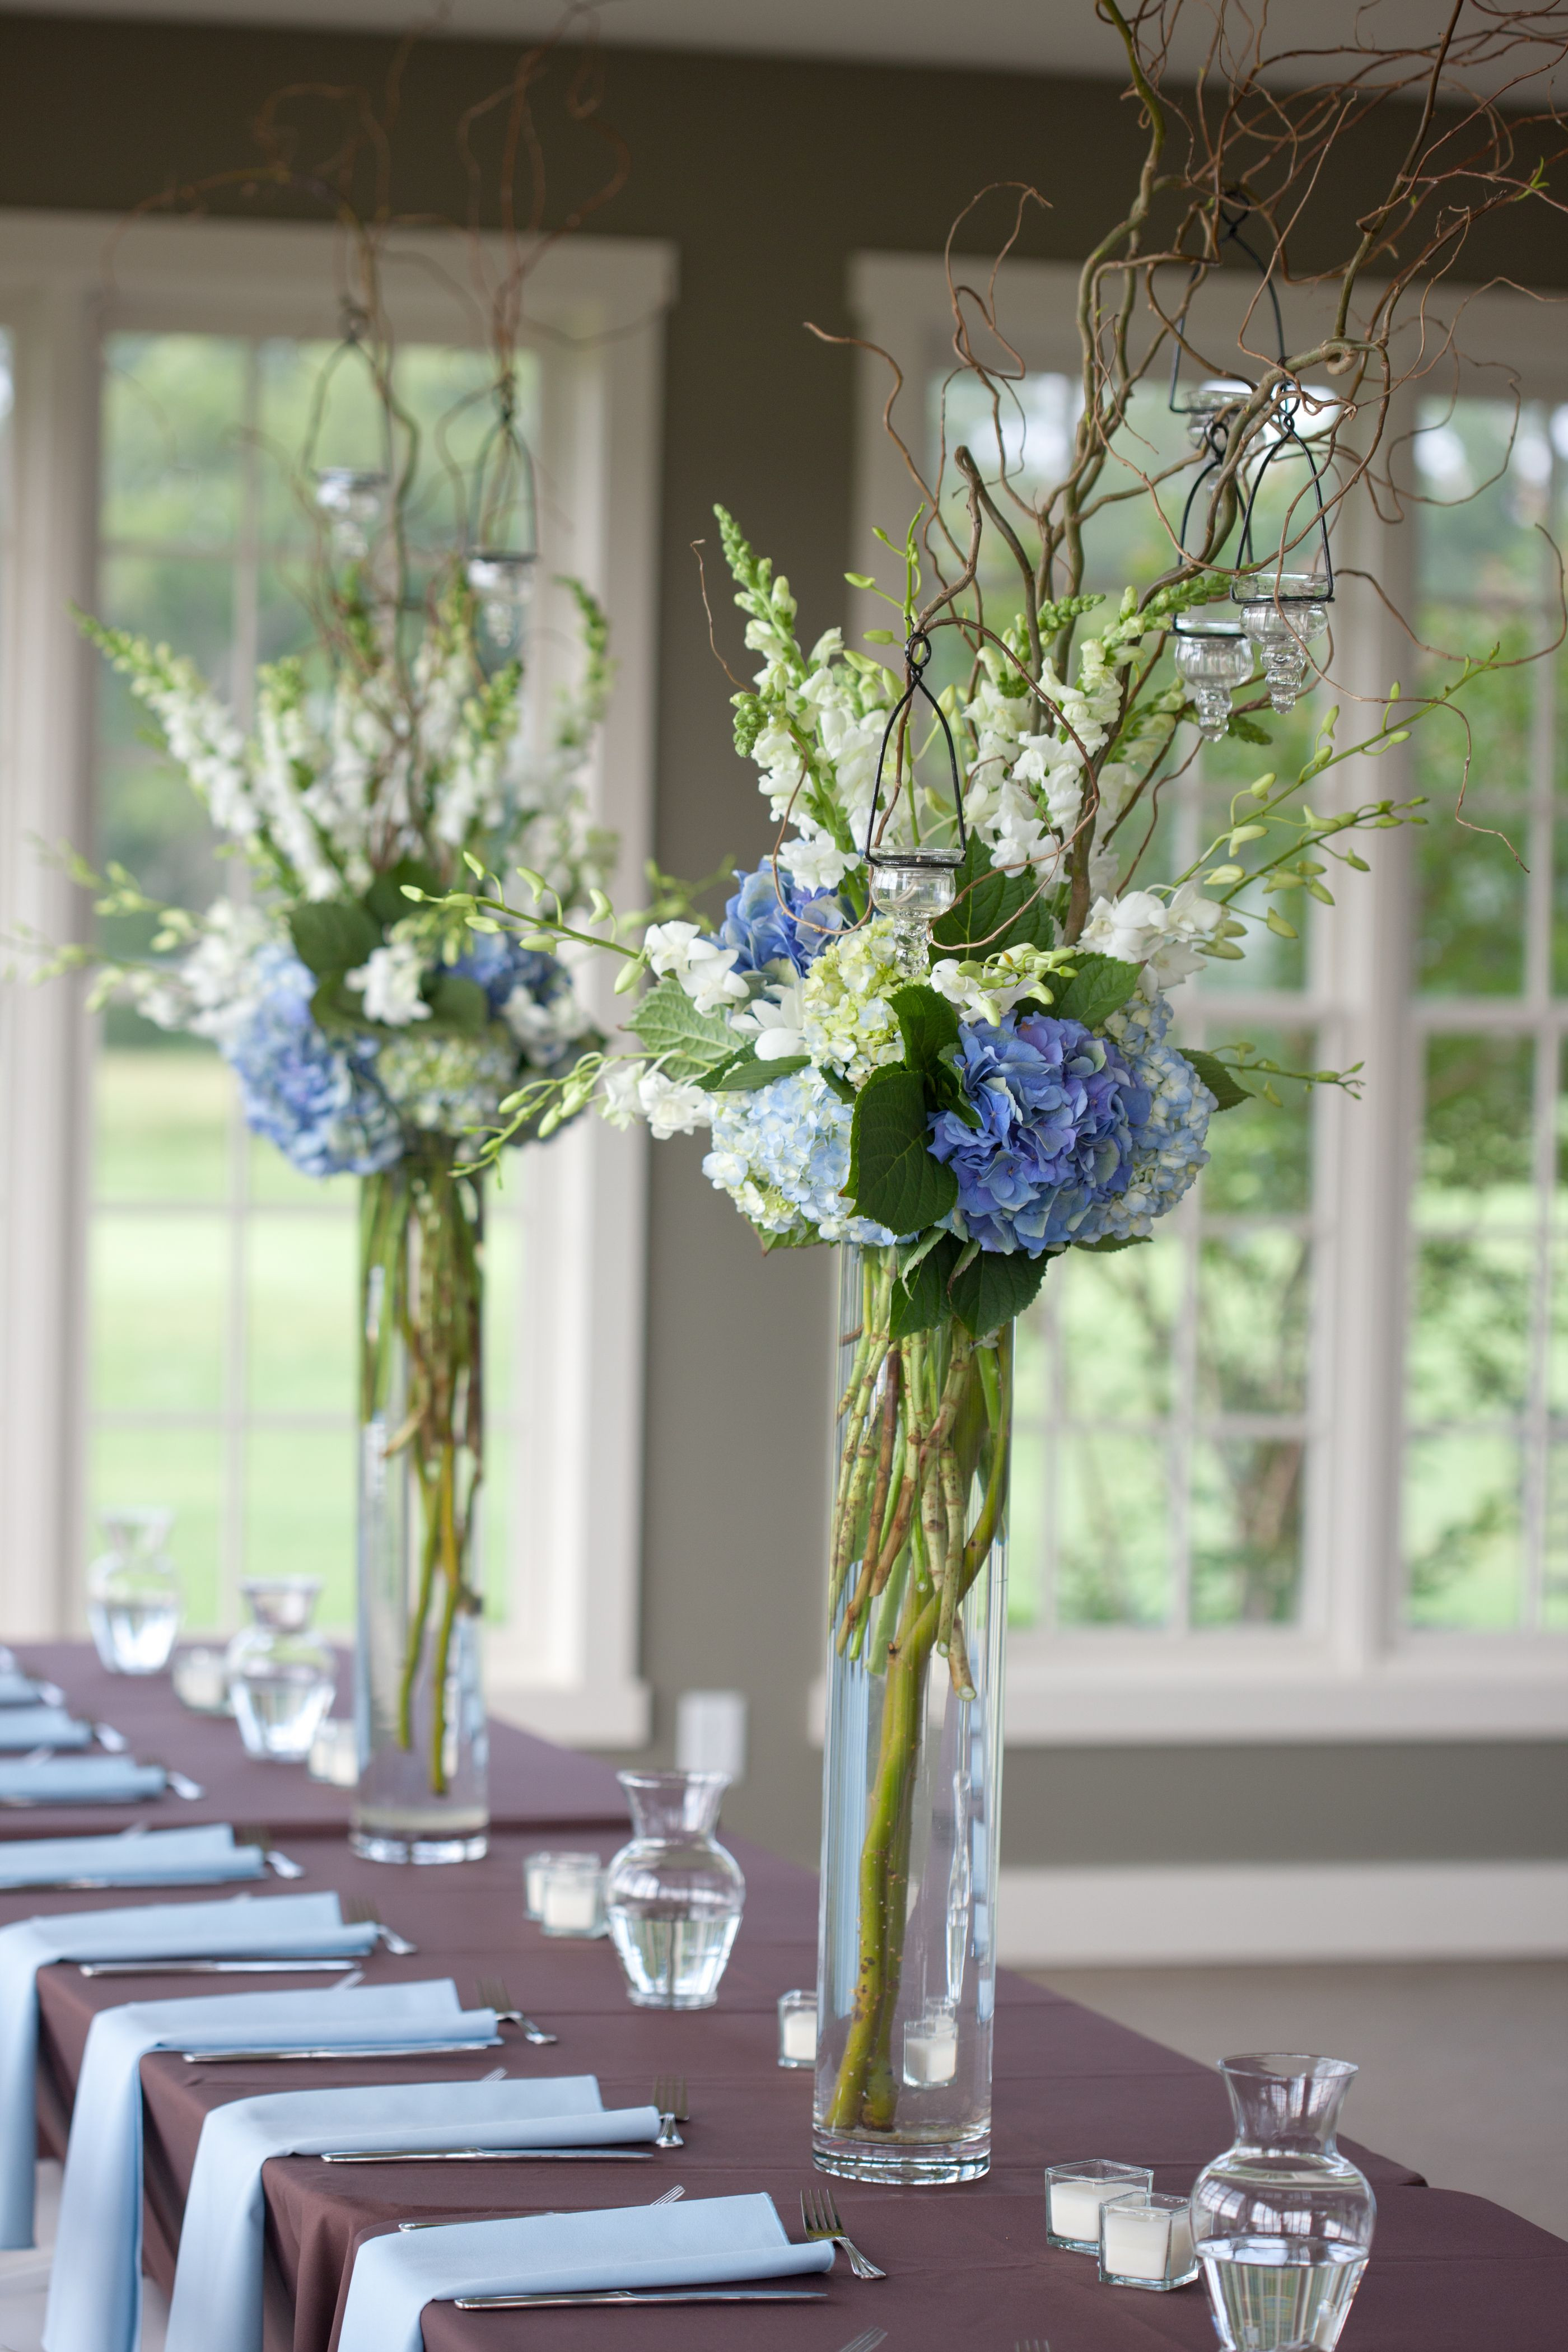 blue and white reception wedding flowers wedding decor wedding flower centerpiece wedding flower arrangement add pic source on ment and we will